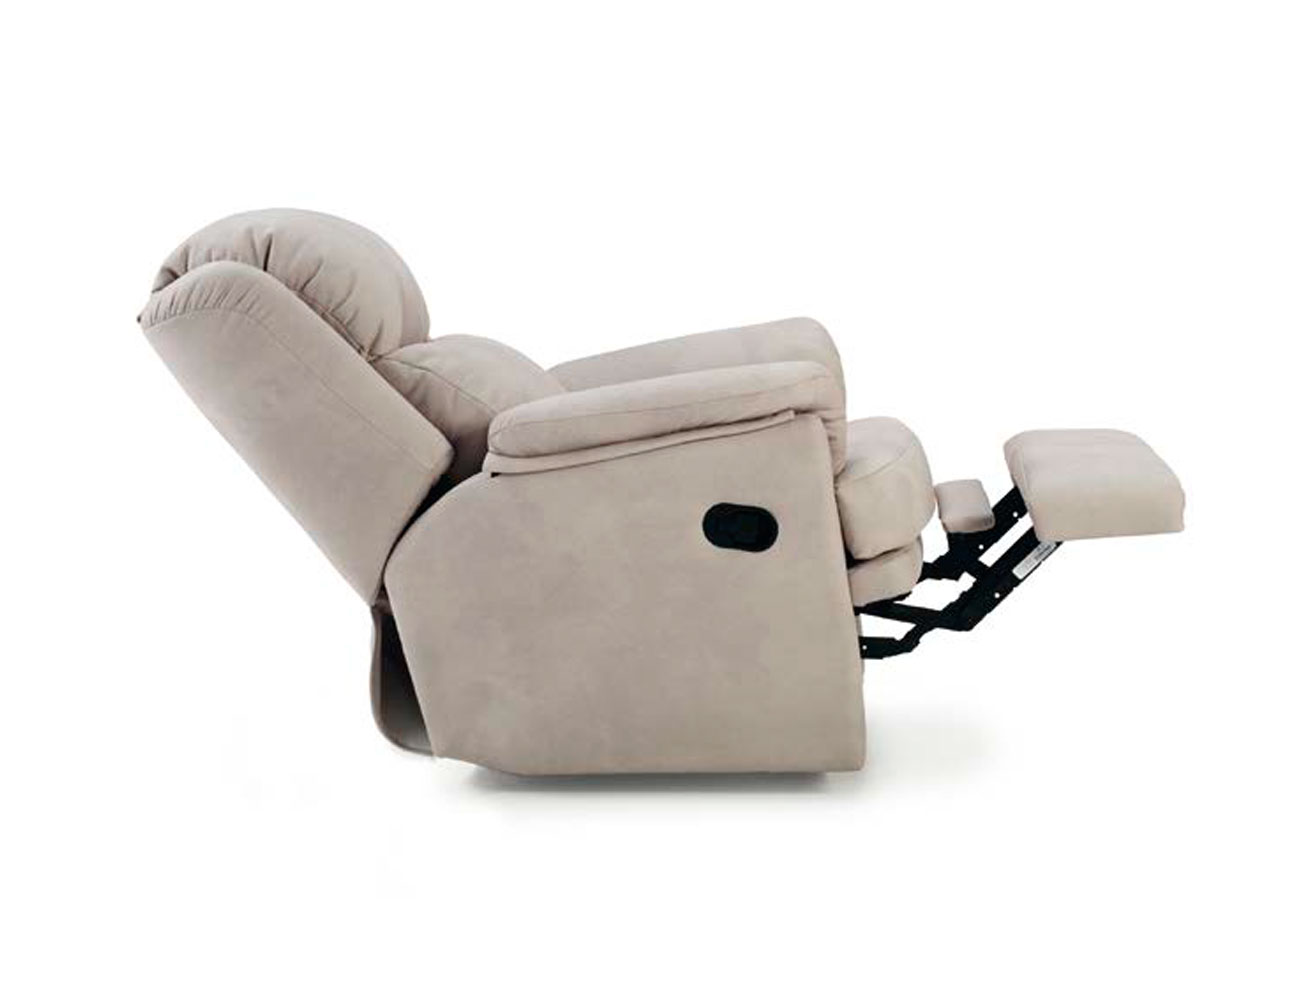 Sillon relax manual palanca esther 1